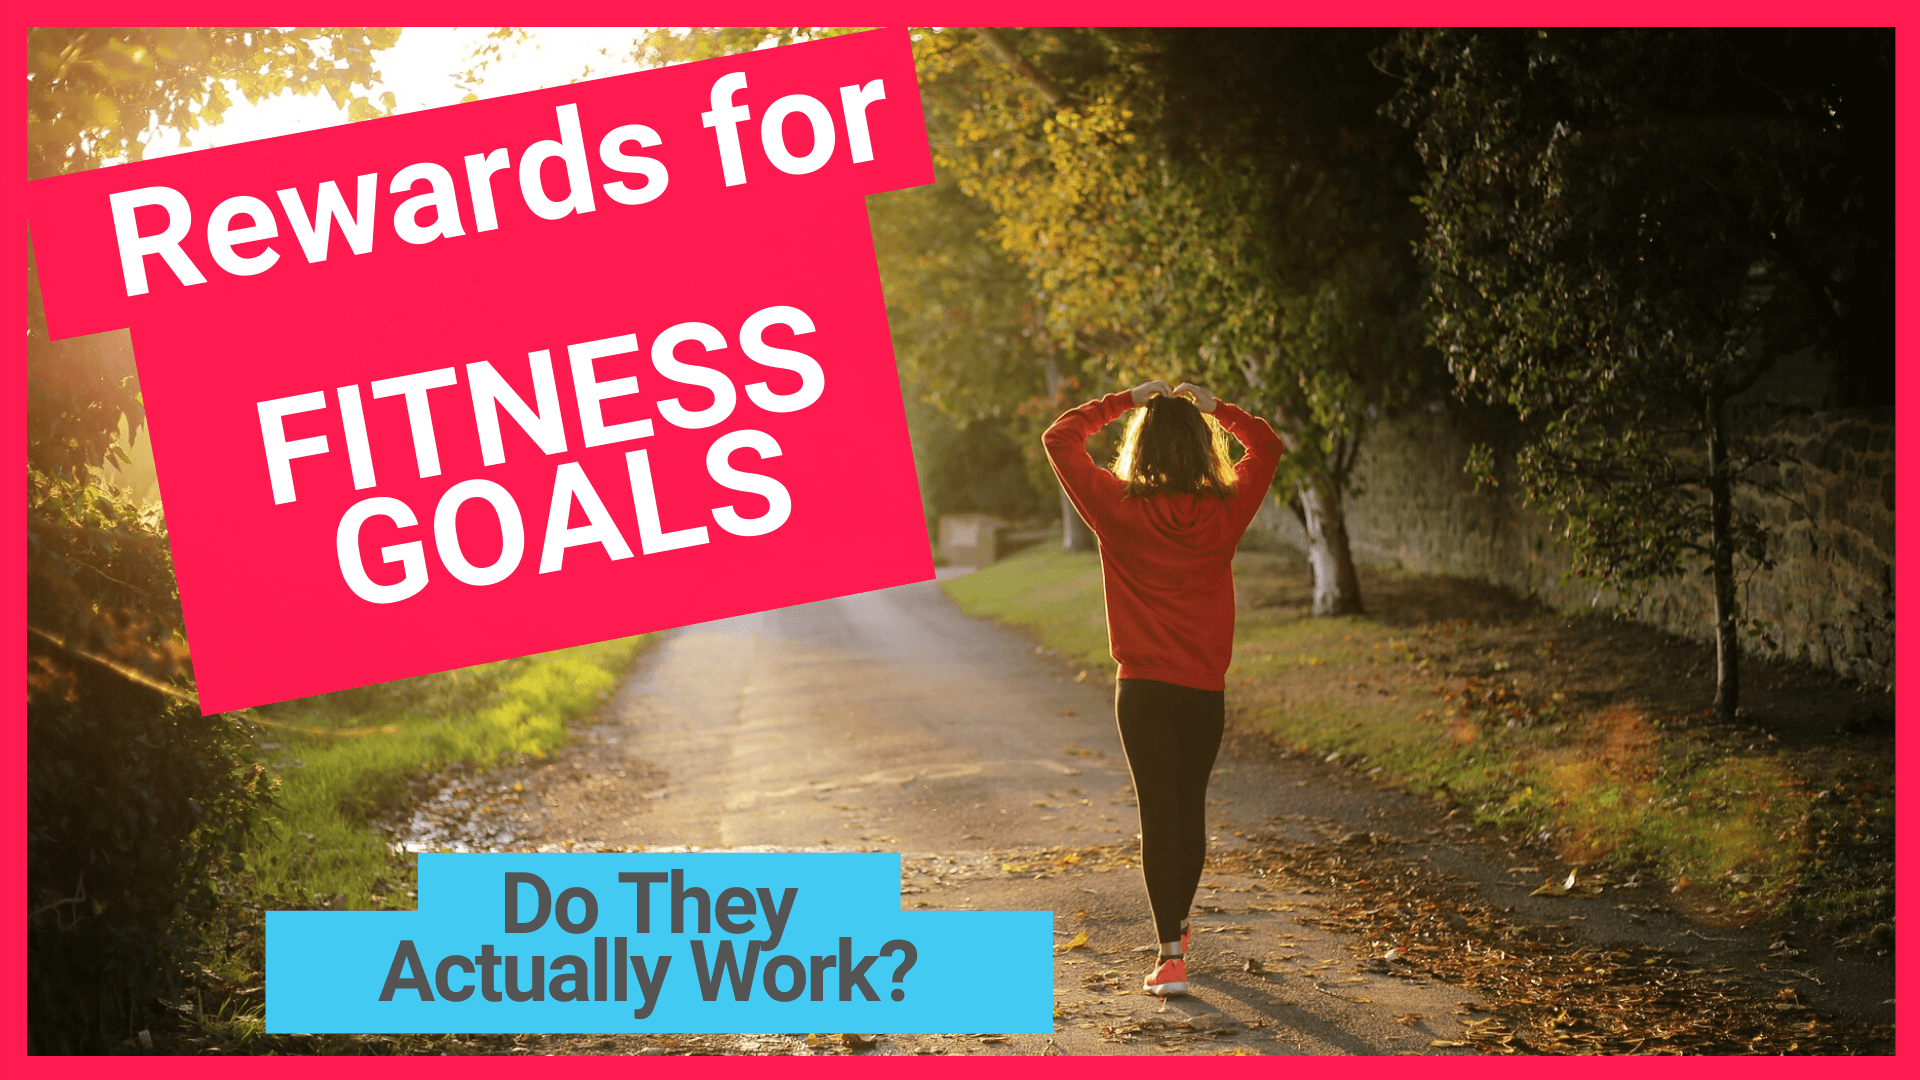 Rewards For Fitness Goals: Will They Help You?